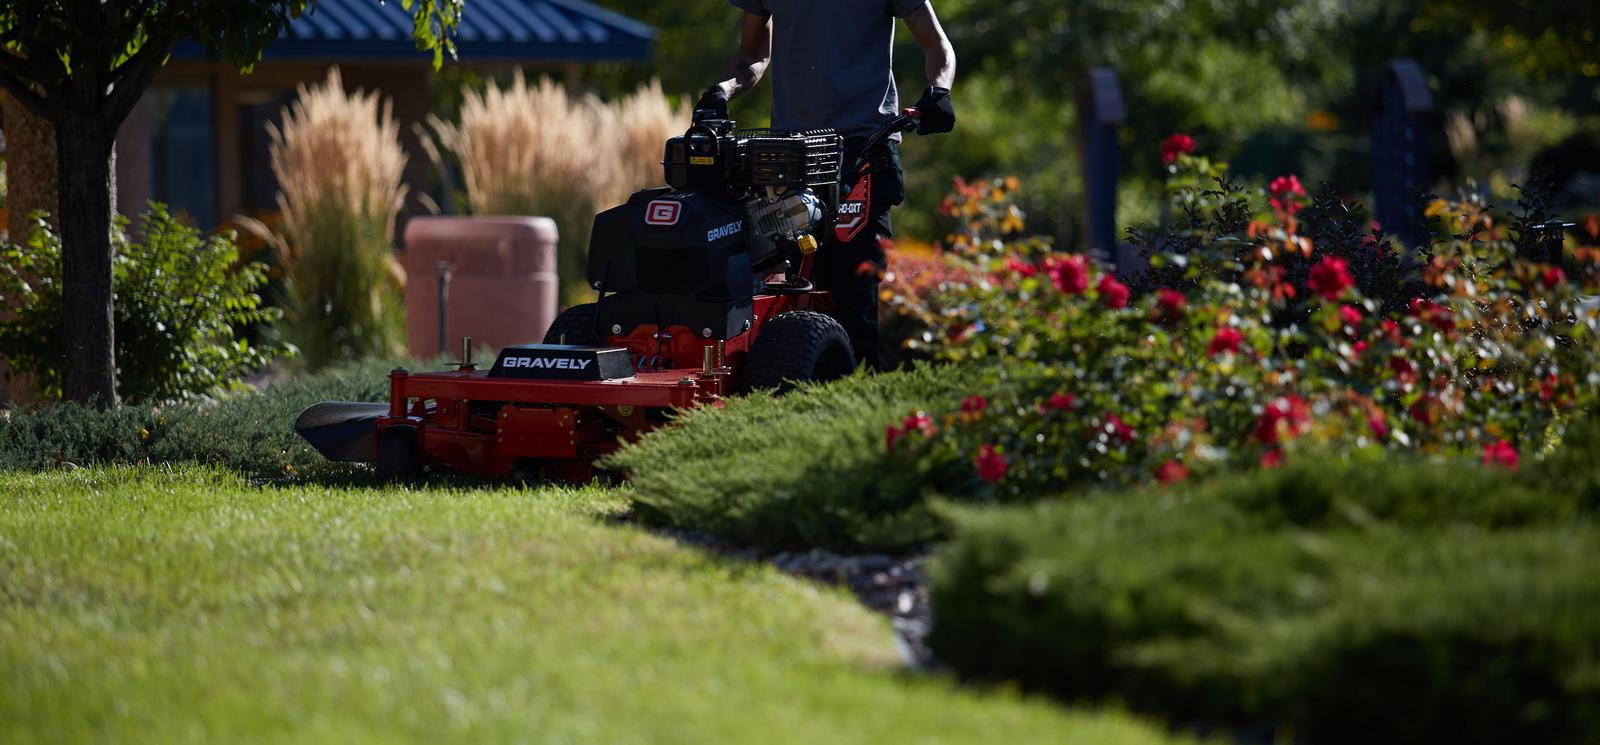 Man using a standing Gravely lawn tractor in yard